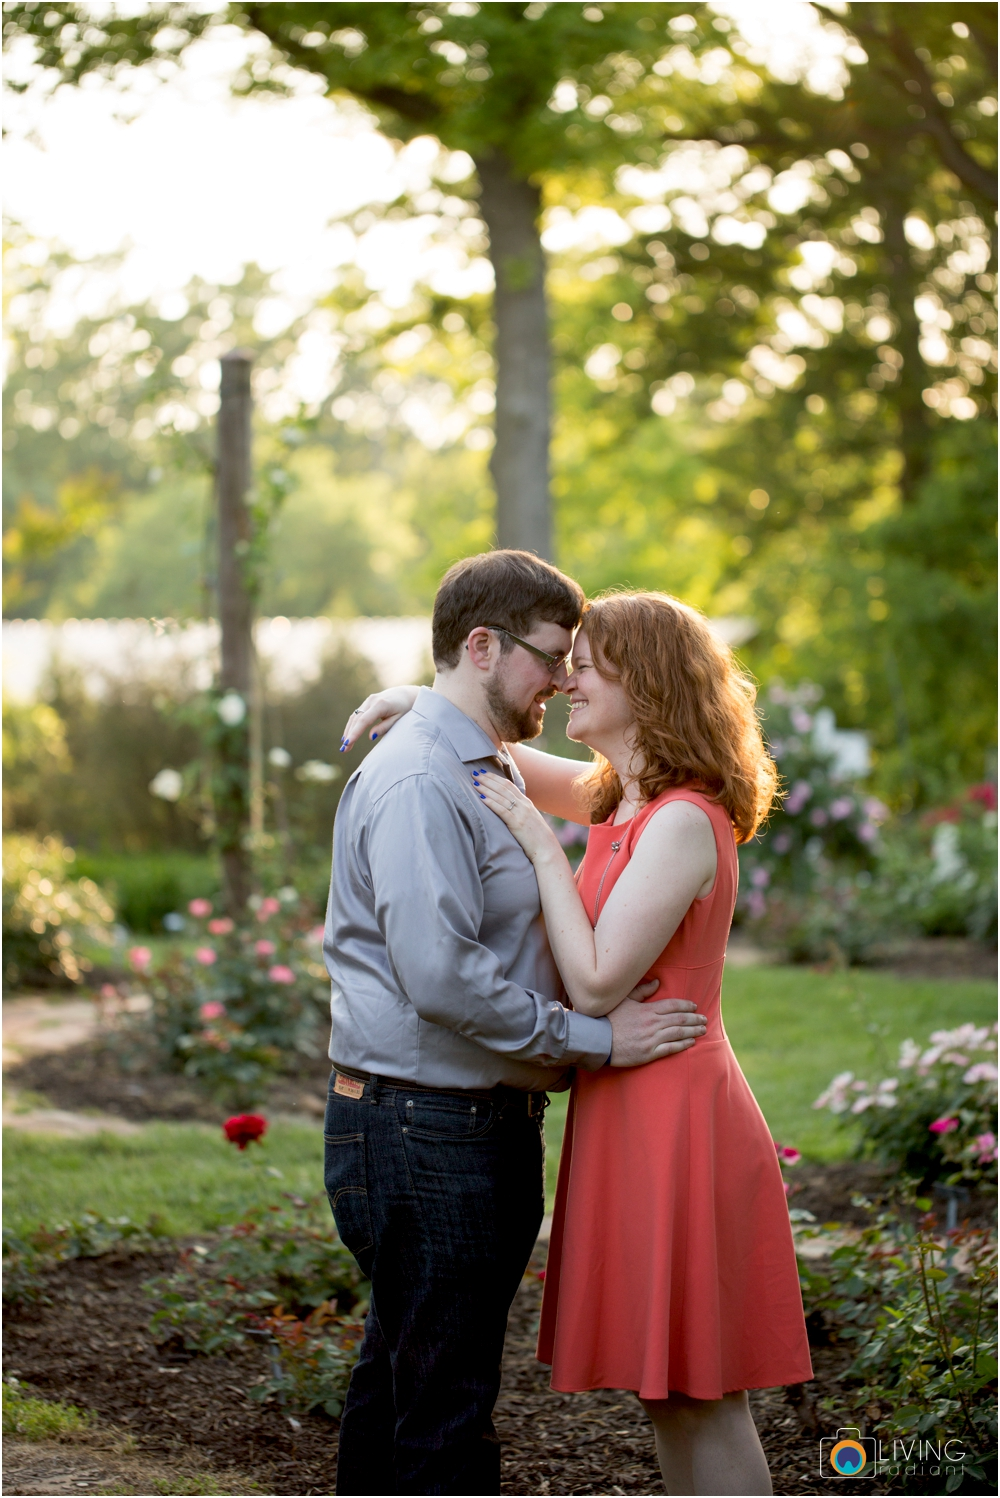 miriam-michael-engaged-clyburn-arboretum-engagement-session-baltimore-outdoor-flowers-living-radiant-photography-maggie-patrick-nolan_0022.jpg